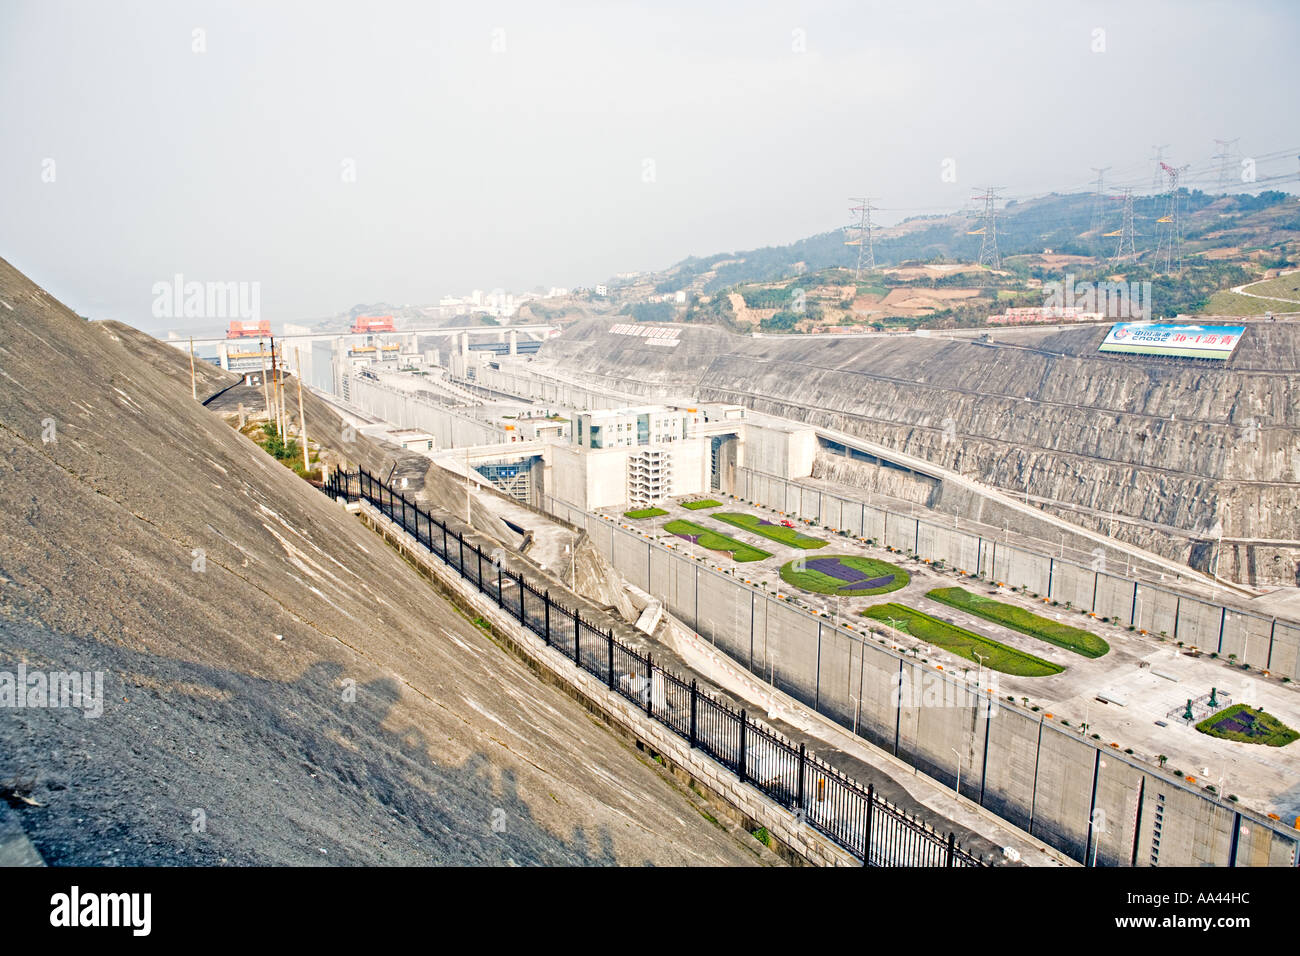 "three gorges dam construction project 1919 : first mention of the three gorges dam project in sun yat-sen's ""plan to develop industry"" 1931 : massive flooding along the yangtze river kills 145,000 people."